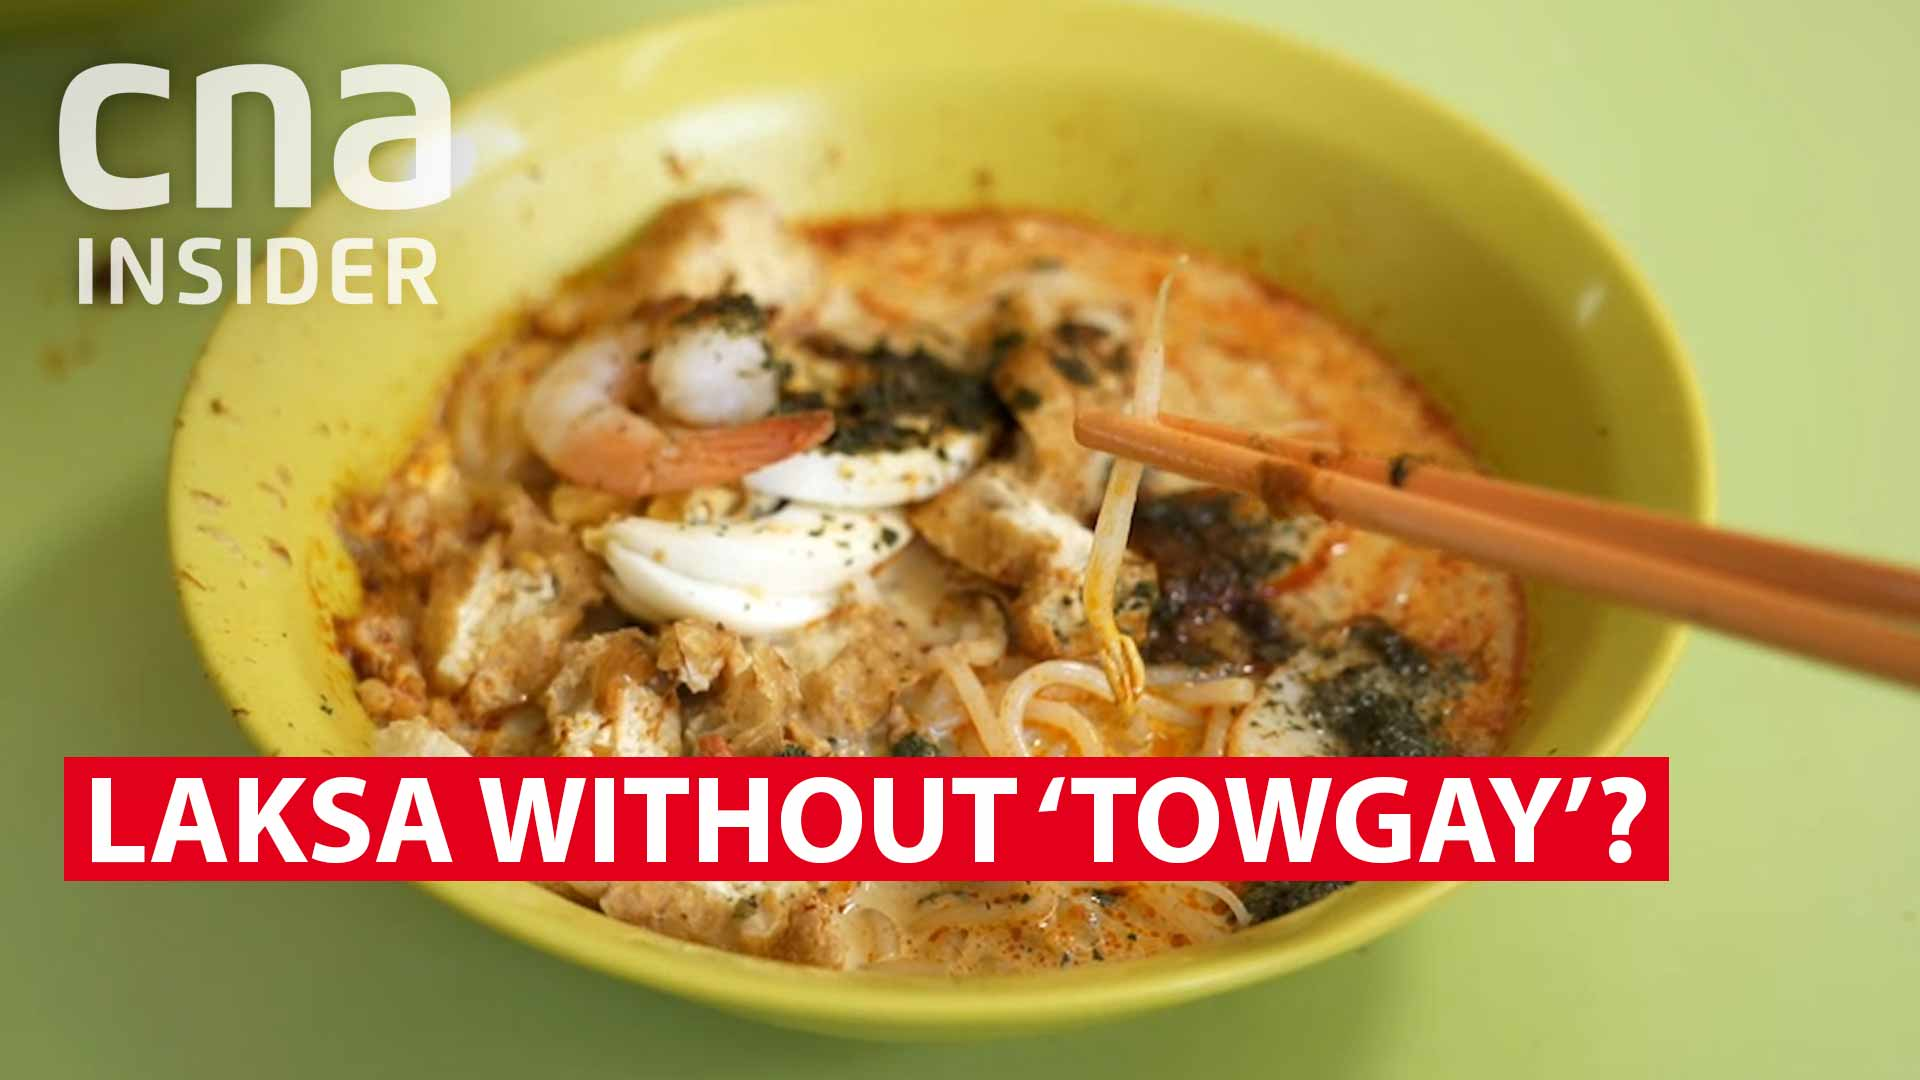 Laksa without 'towgay'?